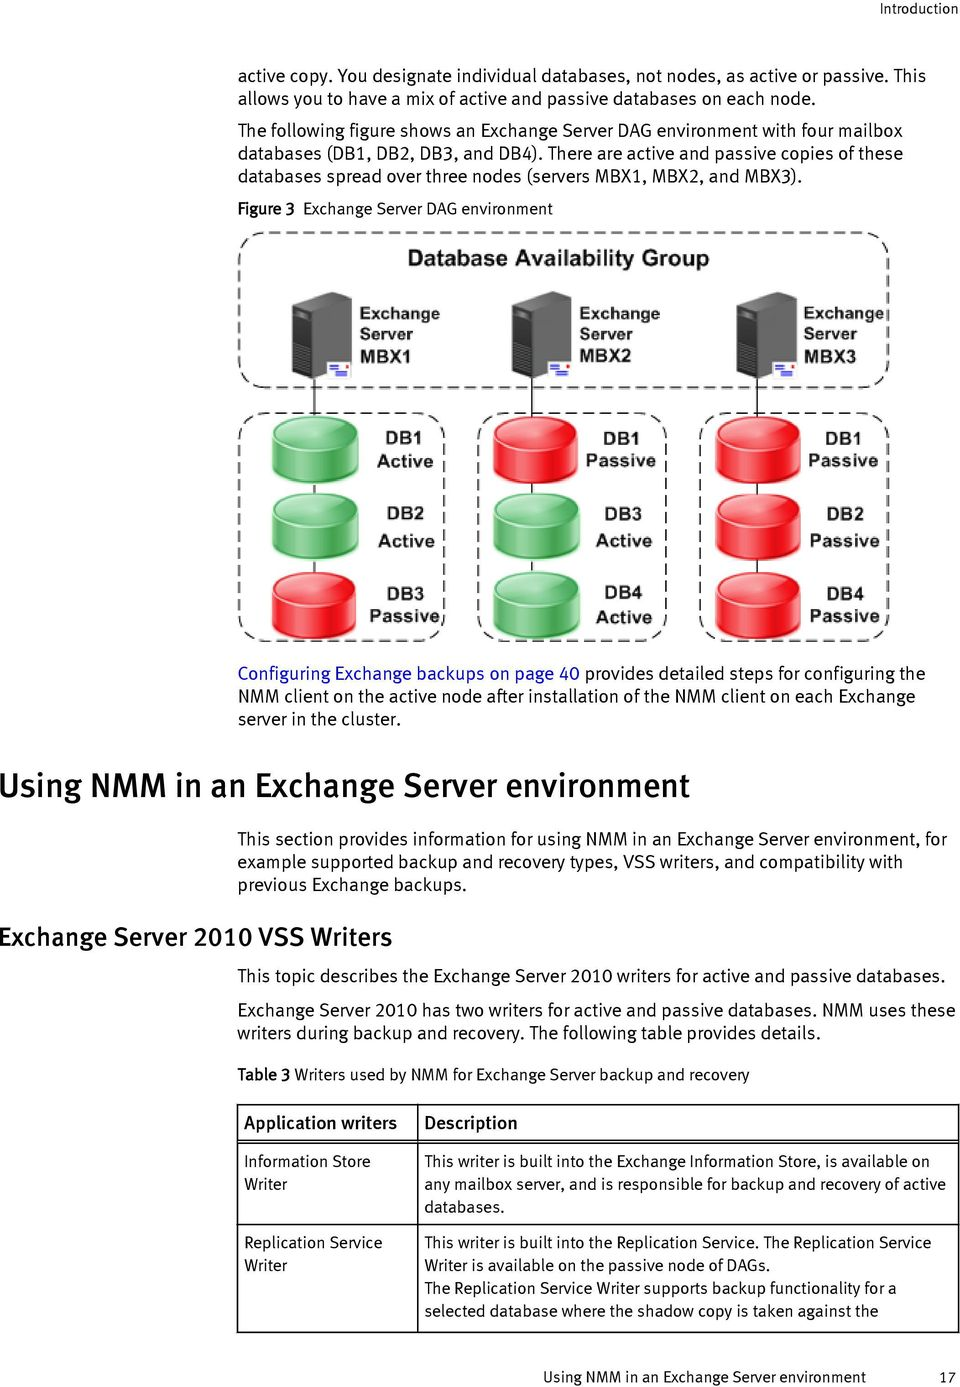 There are active and passive copies of these databases spread over three nodes (servers MBX1, MBX2, and MBX3).